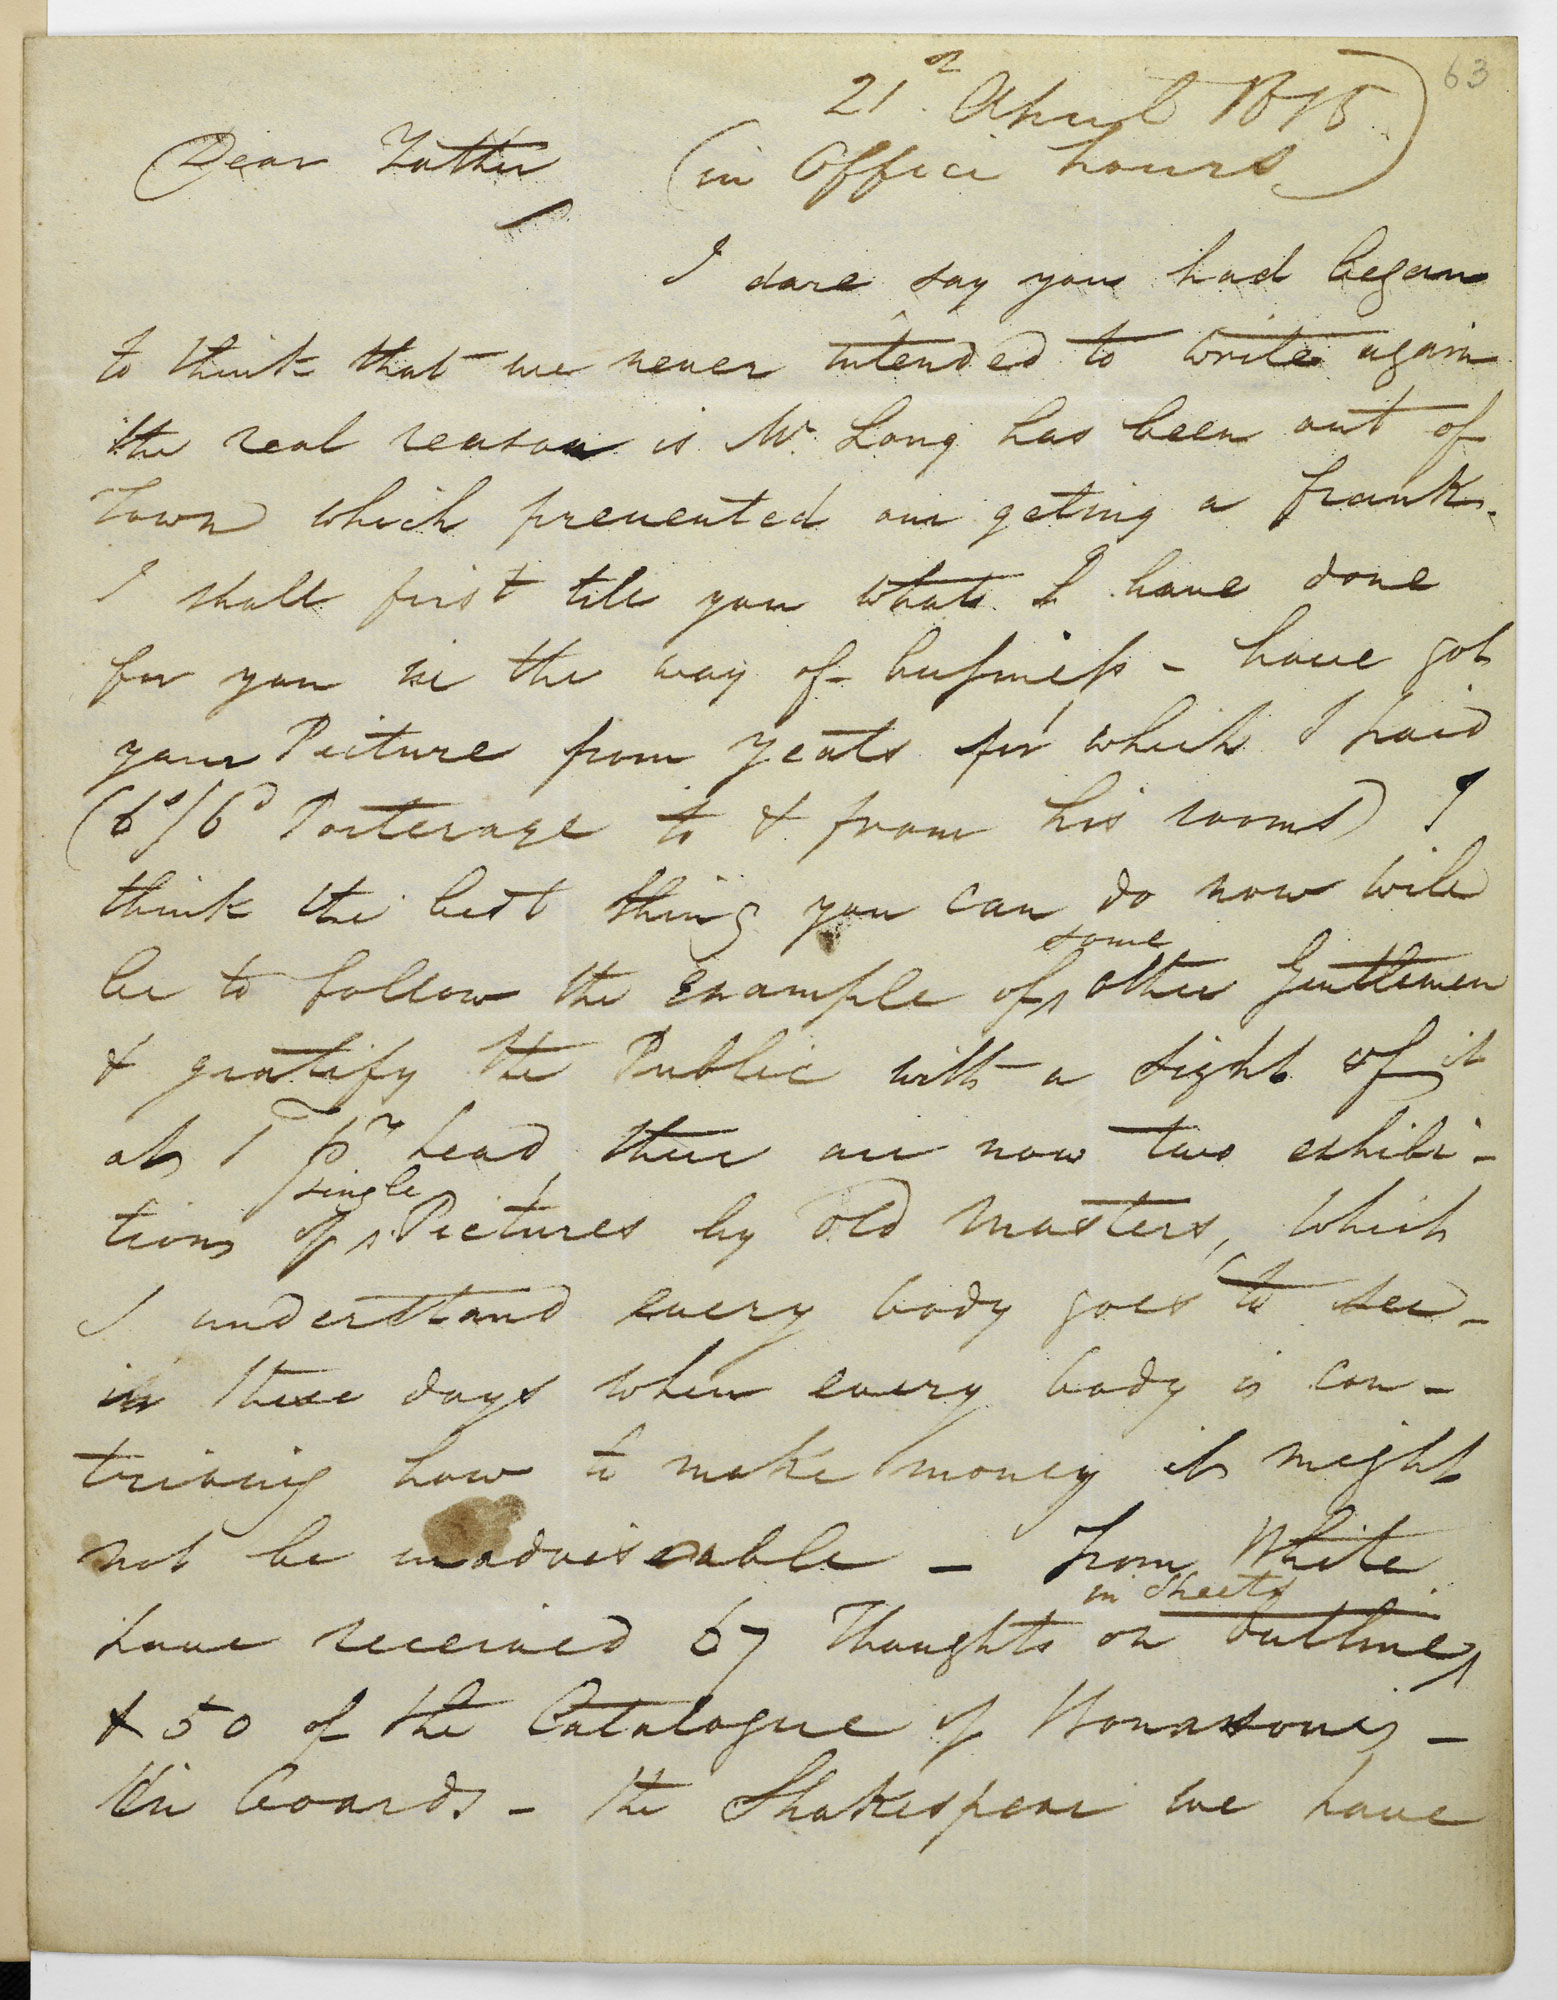 Letter from George Cumberland junior to his father, 21 April 1815 [folio: 63r]